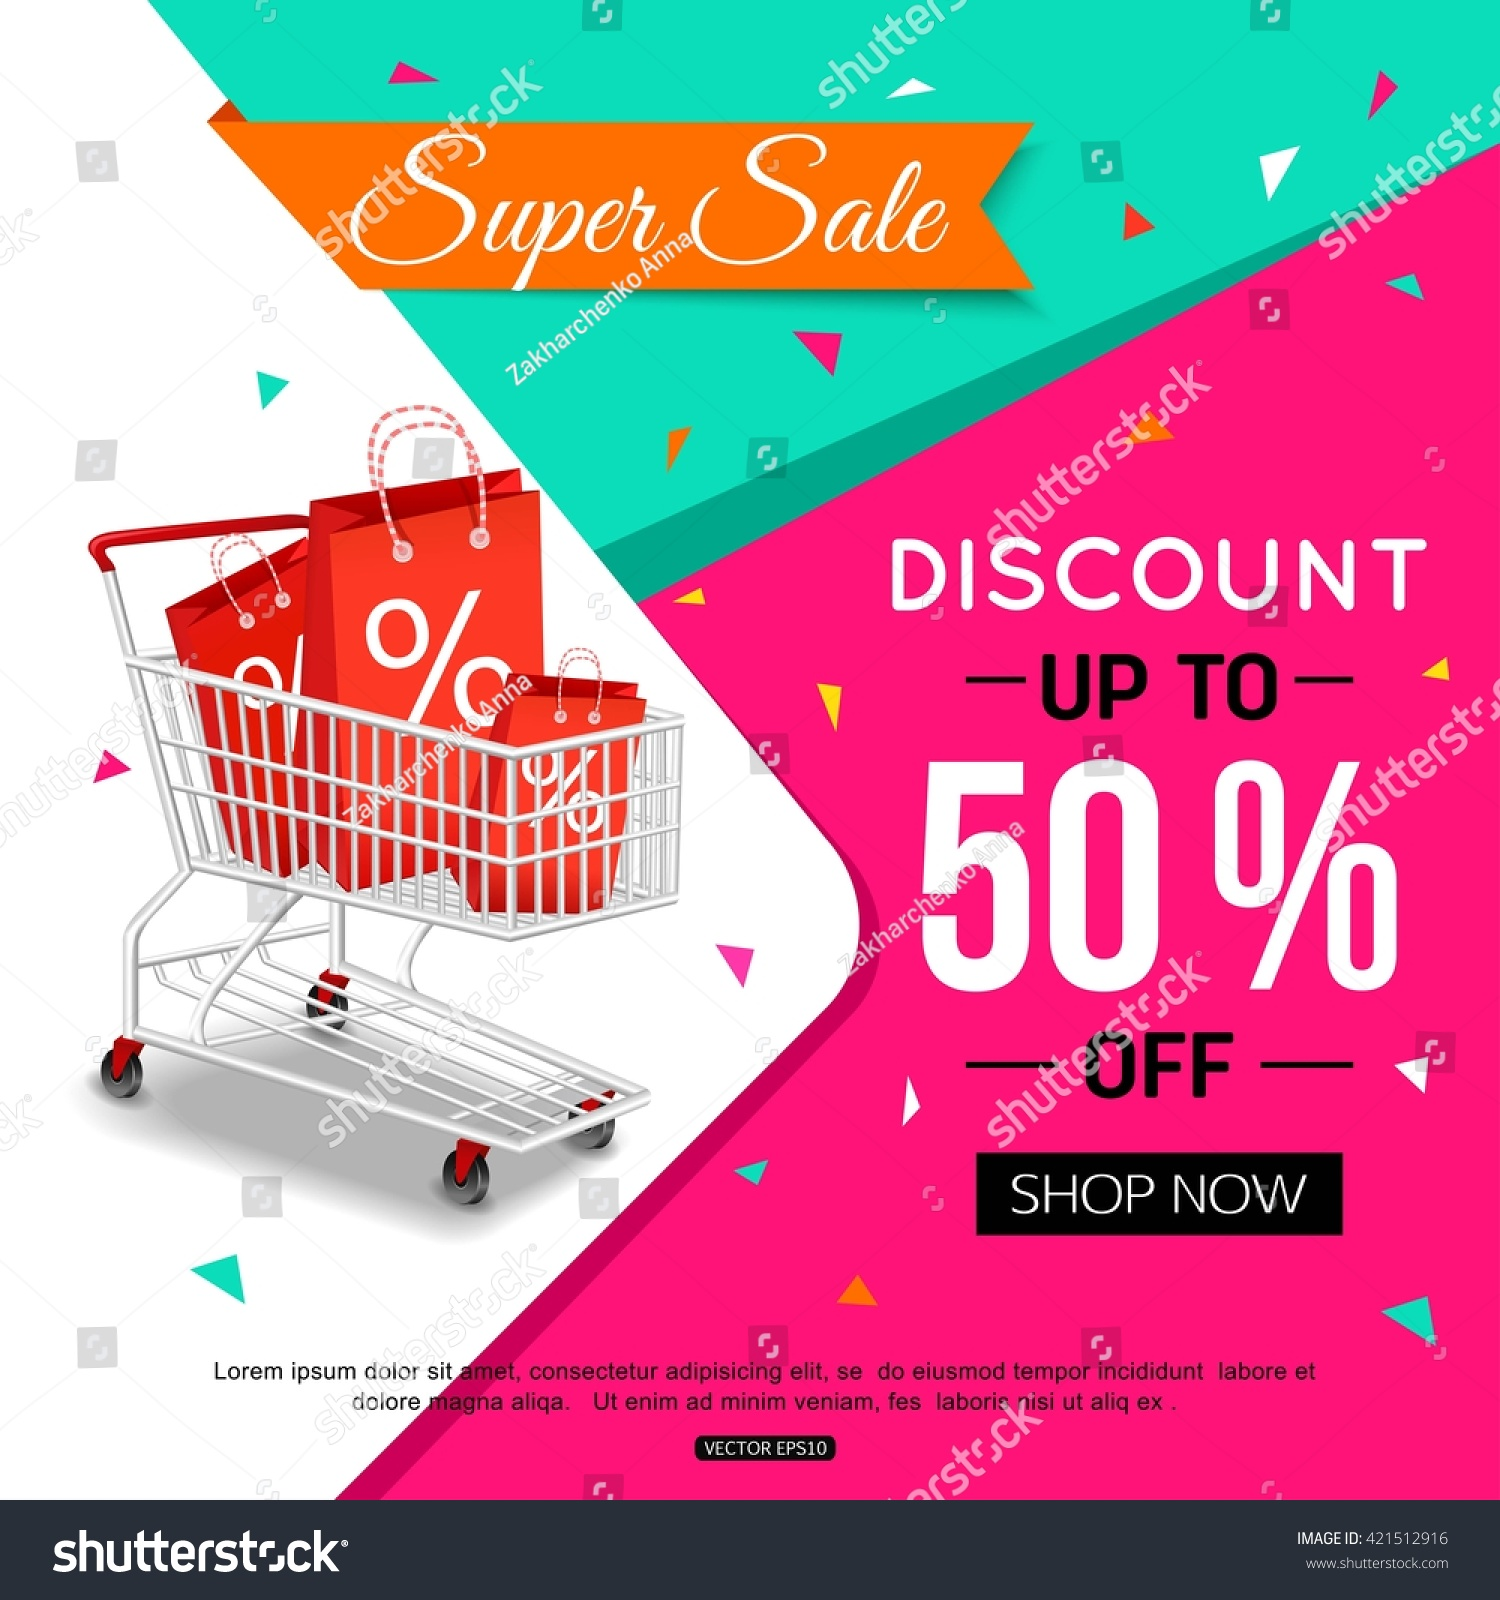 Store Banne Design Super Sale Banner Design Shop Online Stock Vector